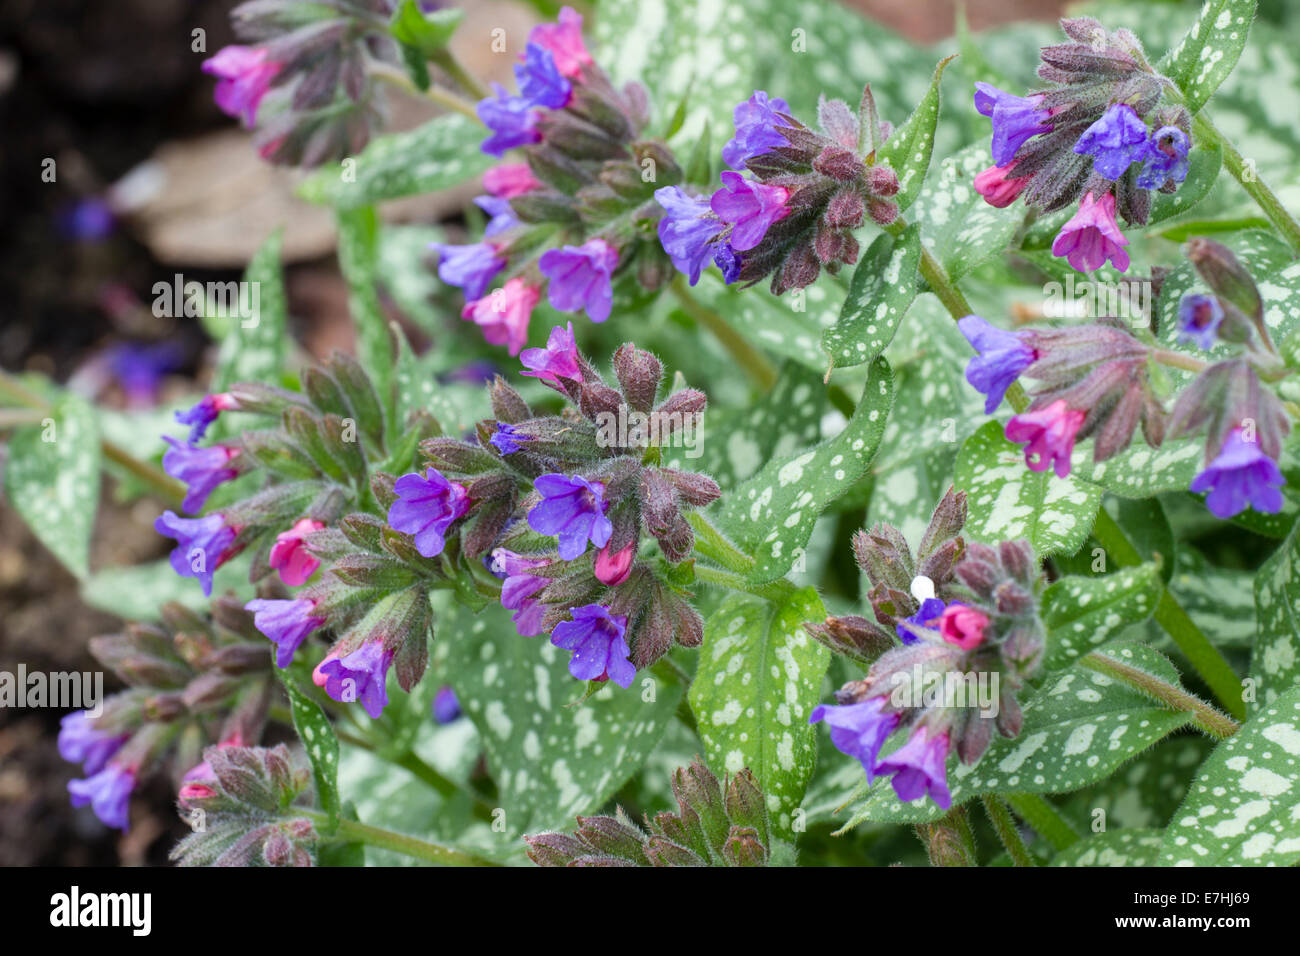 Early Spring Flowers And Spotted Leaves Of The Lungwort Pulmonaria